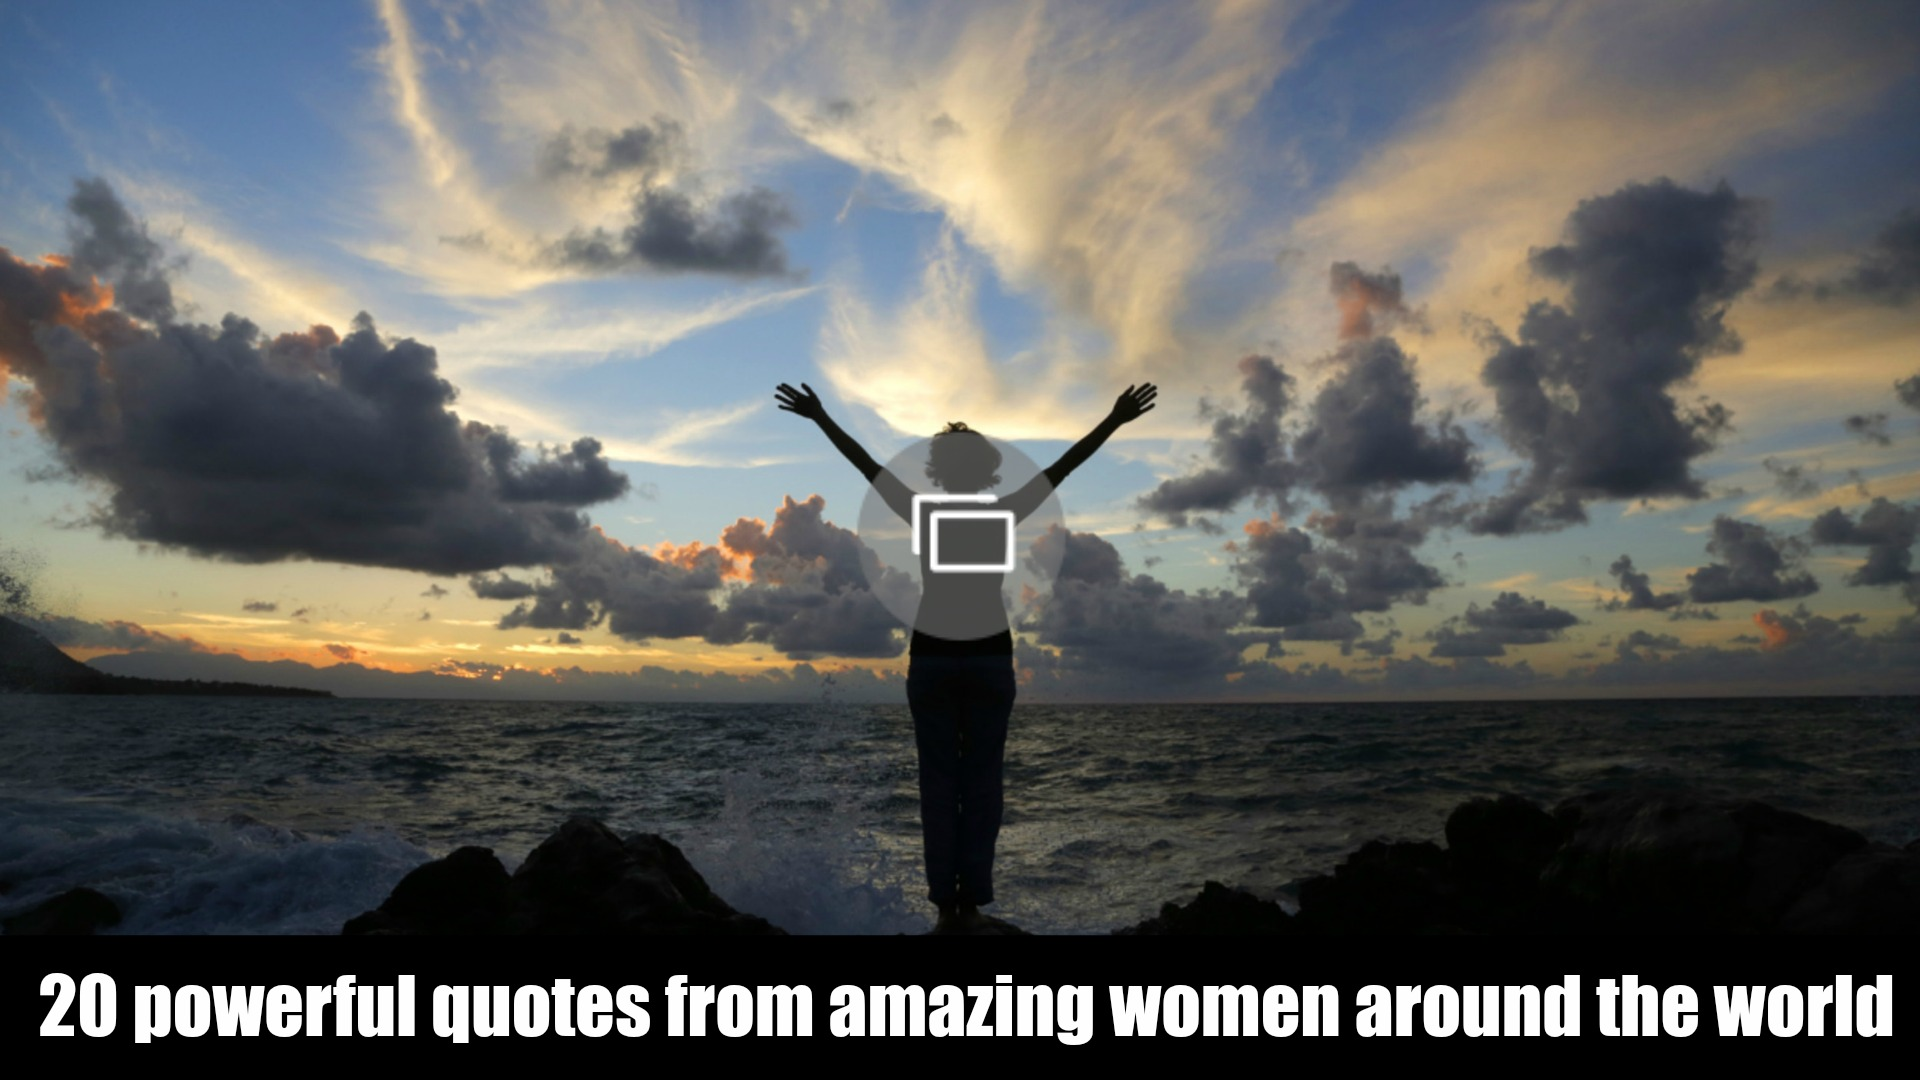 Powerful quotes from women